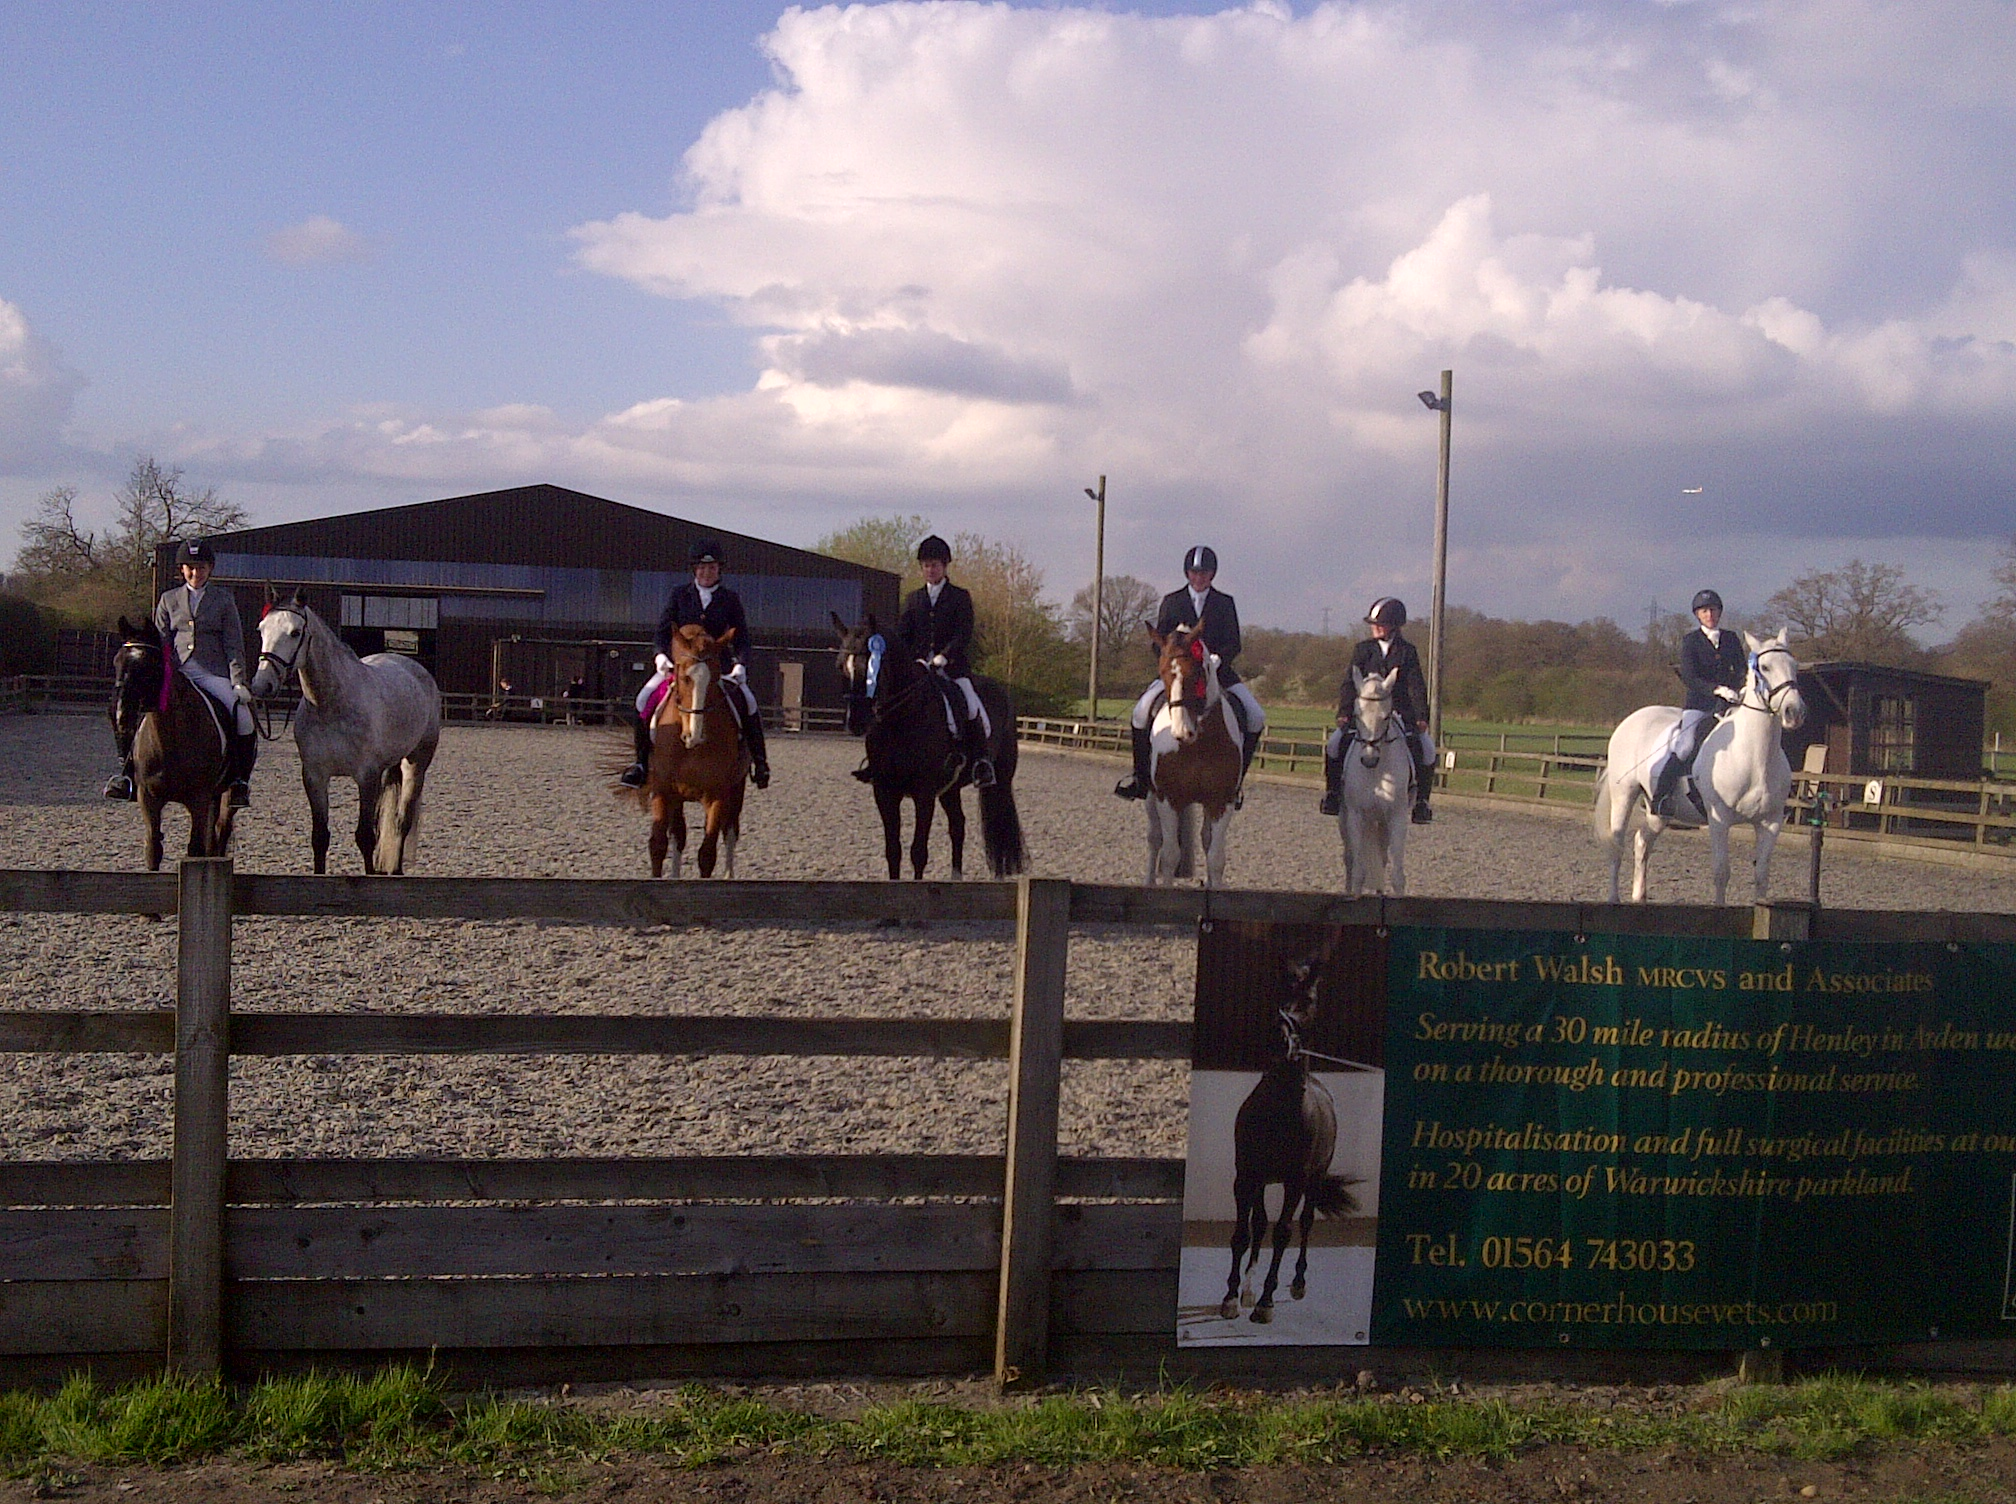 The Magnificent Seven April 13 Trailblazers at Swallowfield EC for Central Horse News.jpg